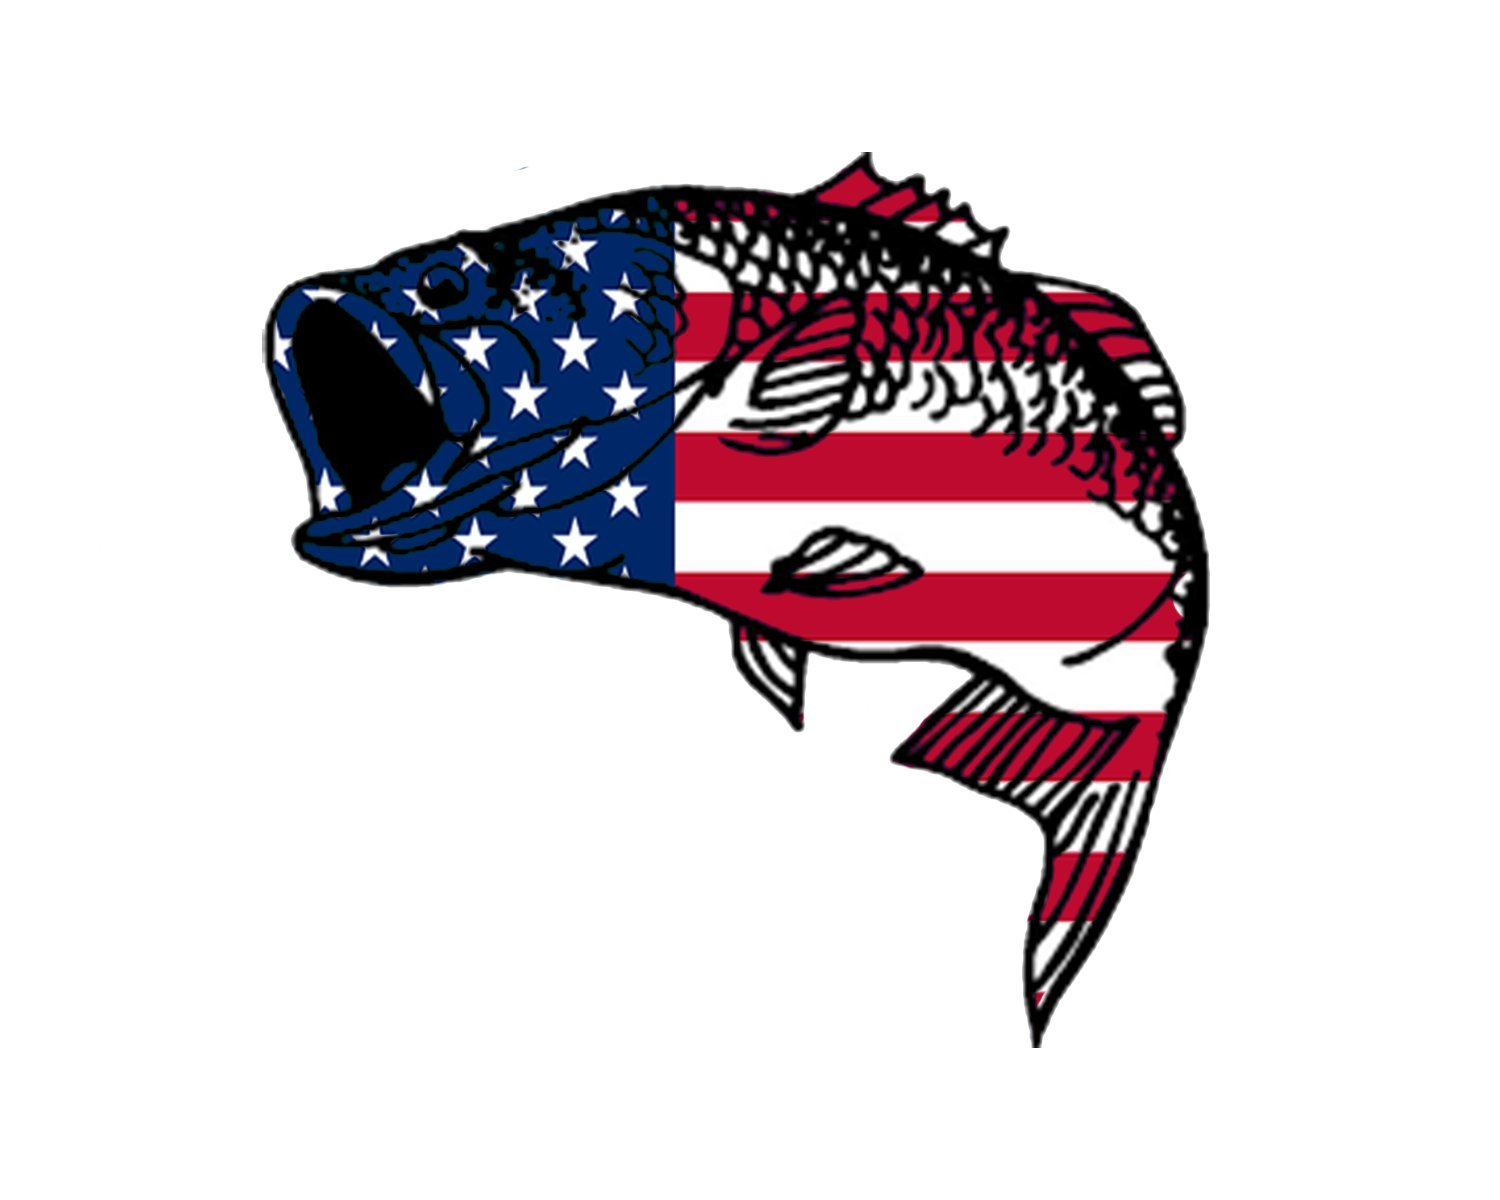 Bass Fish USA Flag Sticker Decal Fishing Bumper Sticker Fish Patriotic United Auto Decal Car Truck Boat RV Real Life Rod Tackle Box Rogue River Tactical